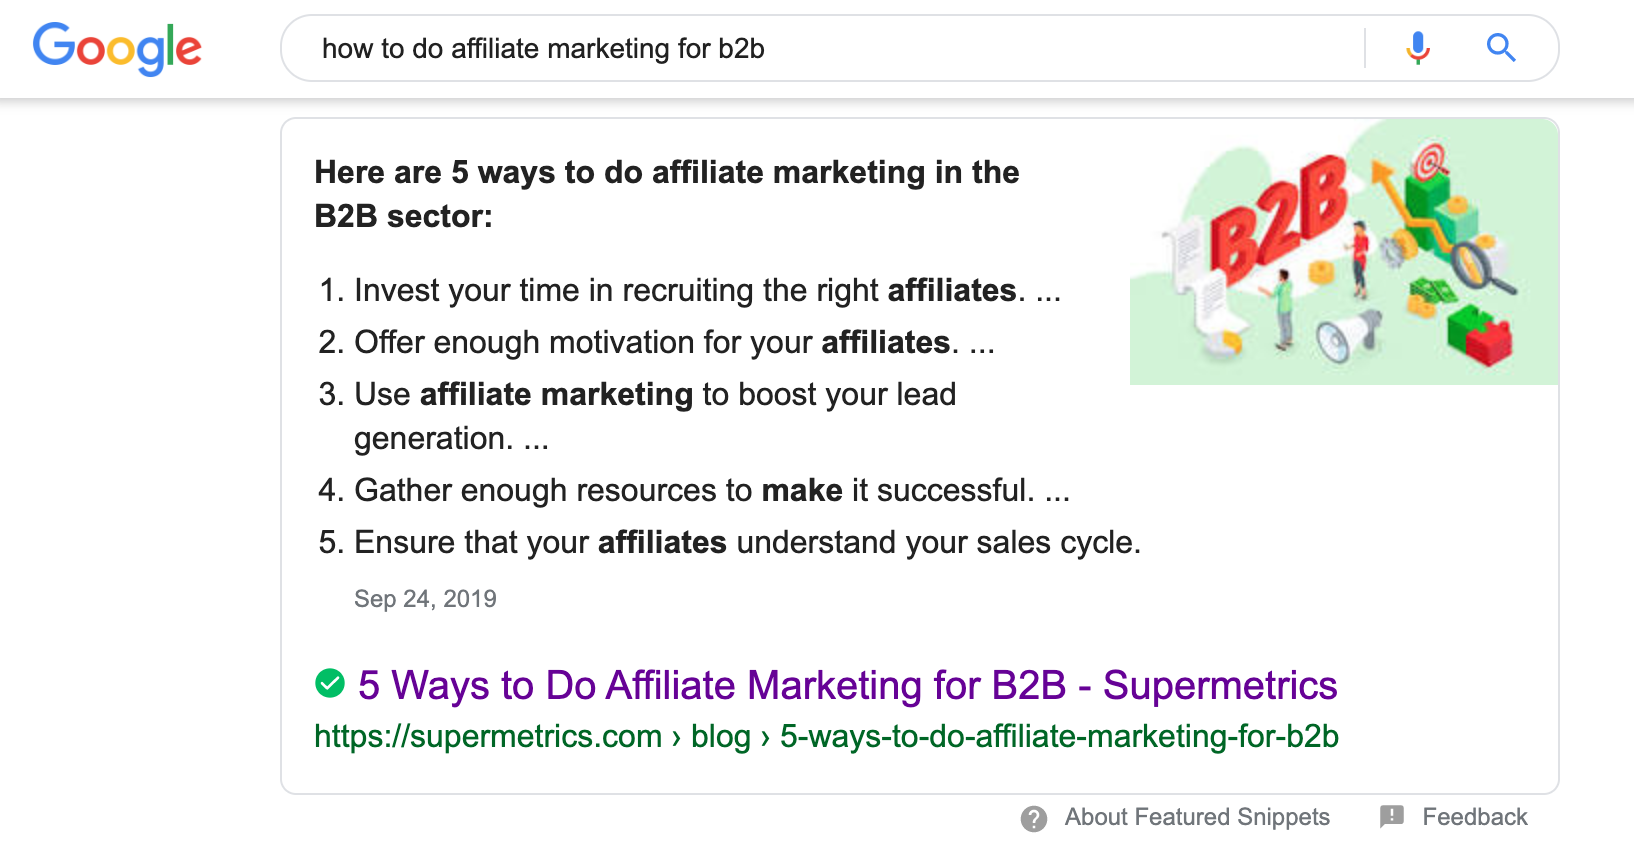 featured snippet for how to do affiliate marketing for b2b